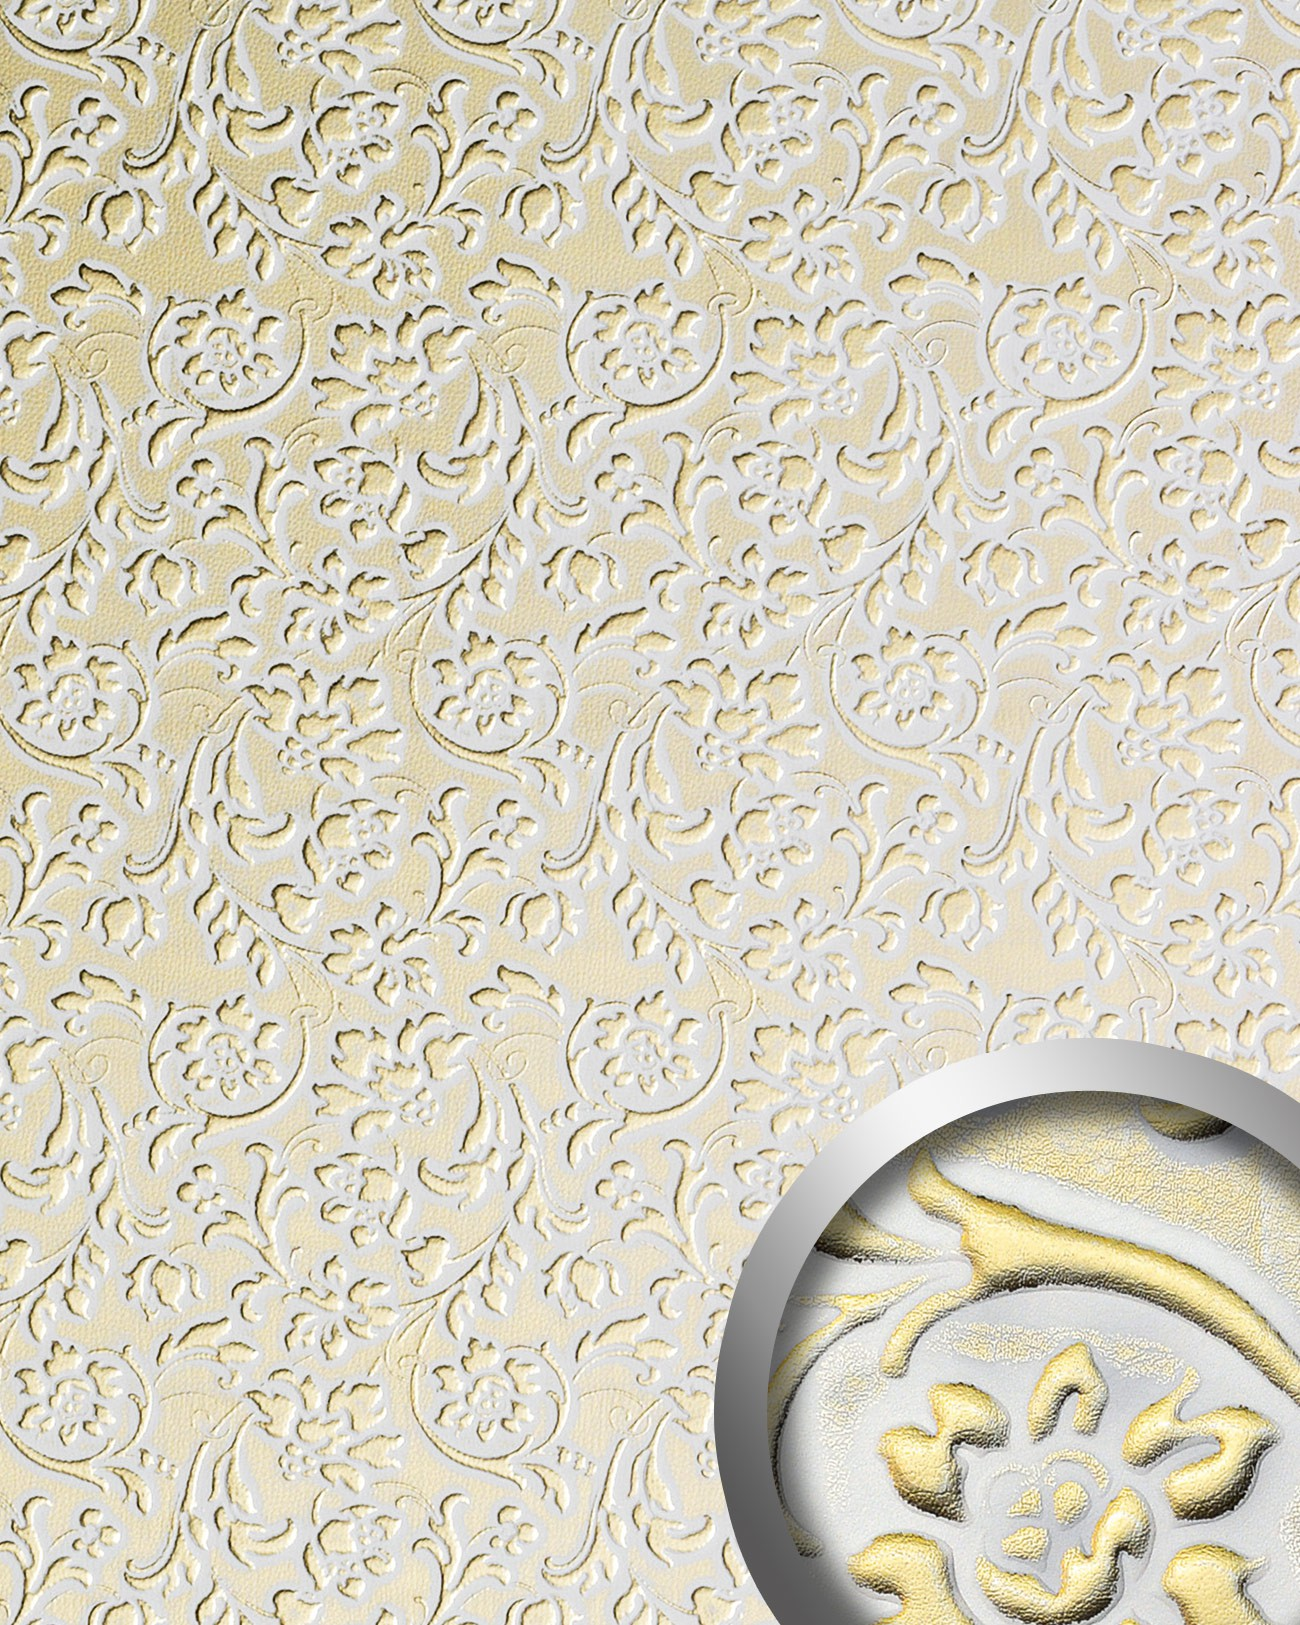 Selbstklebende Tapete Gold : Wandpaneel WallFace 13415 FLORAL gold Original WallFace, Wei?, Gold